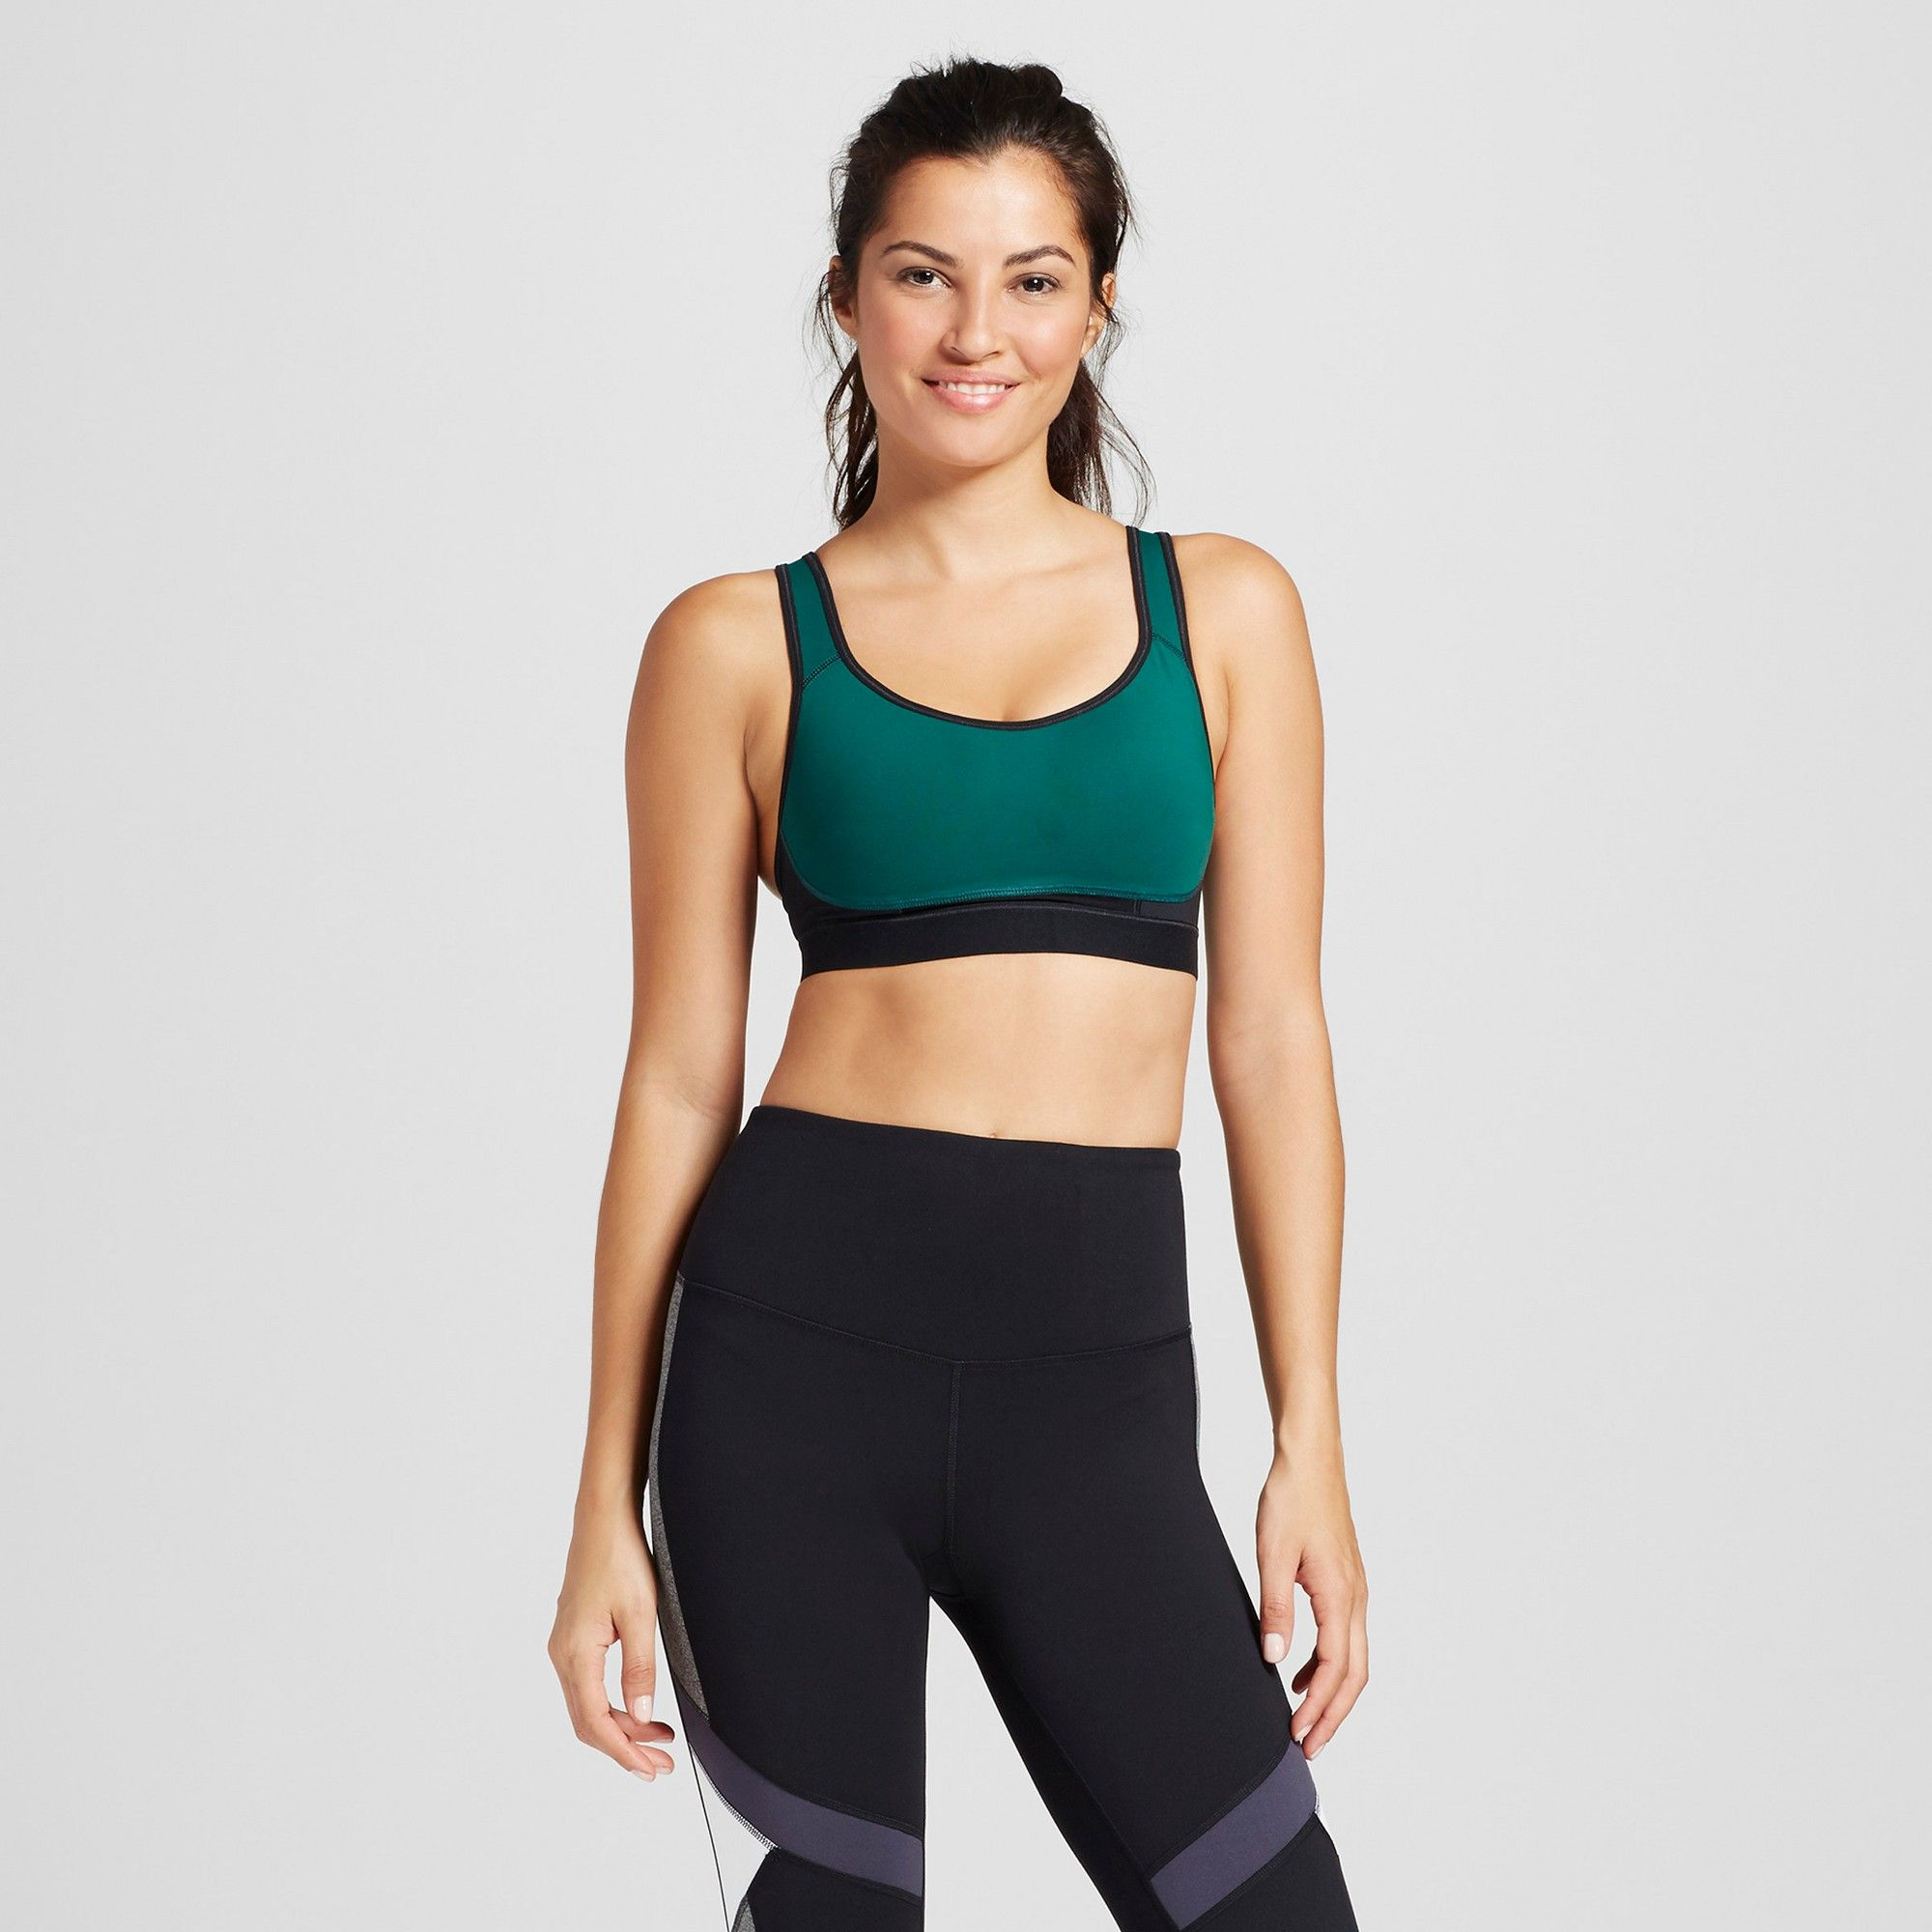 0d640ed6bfc Women s Power Core Compression Max High Support Racerback Sports Bra - C9  Champion - Green S